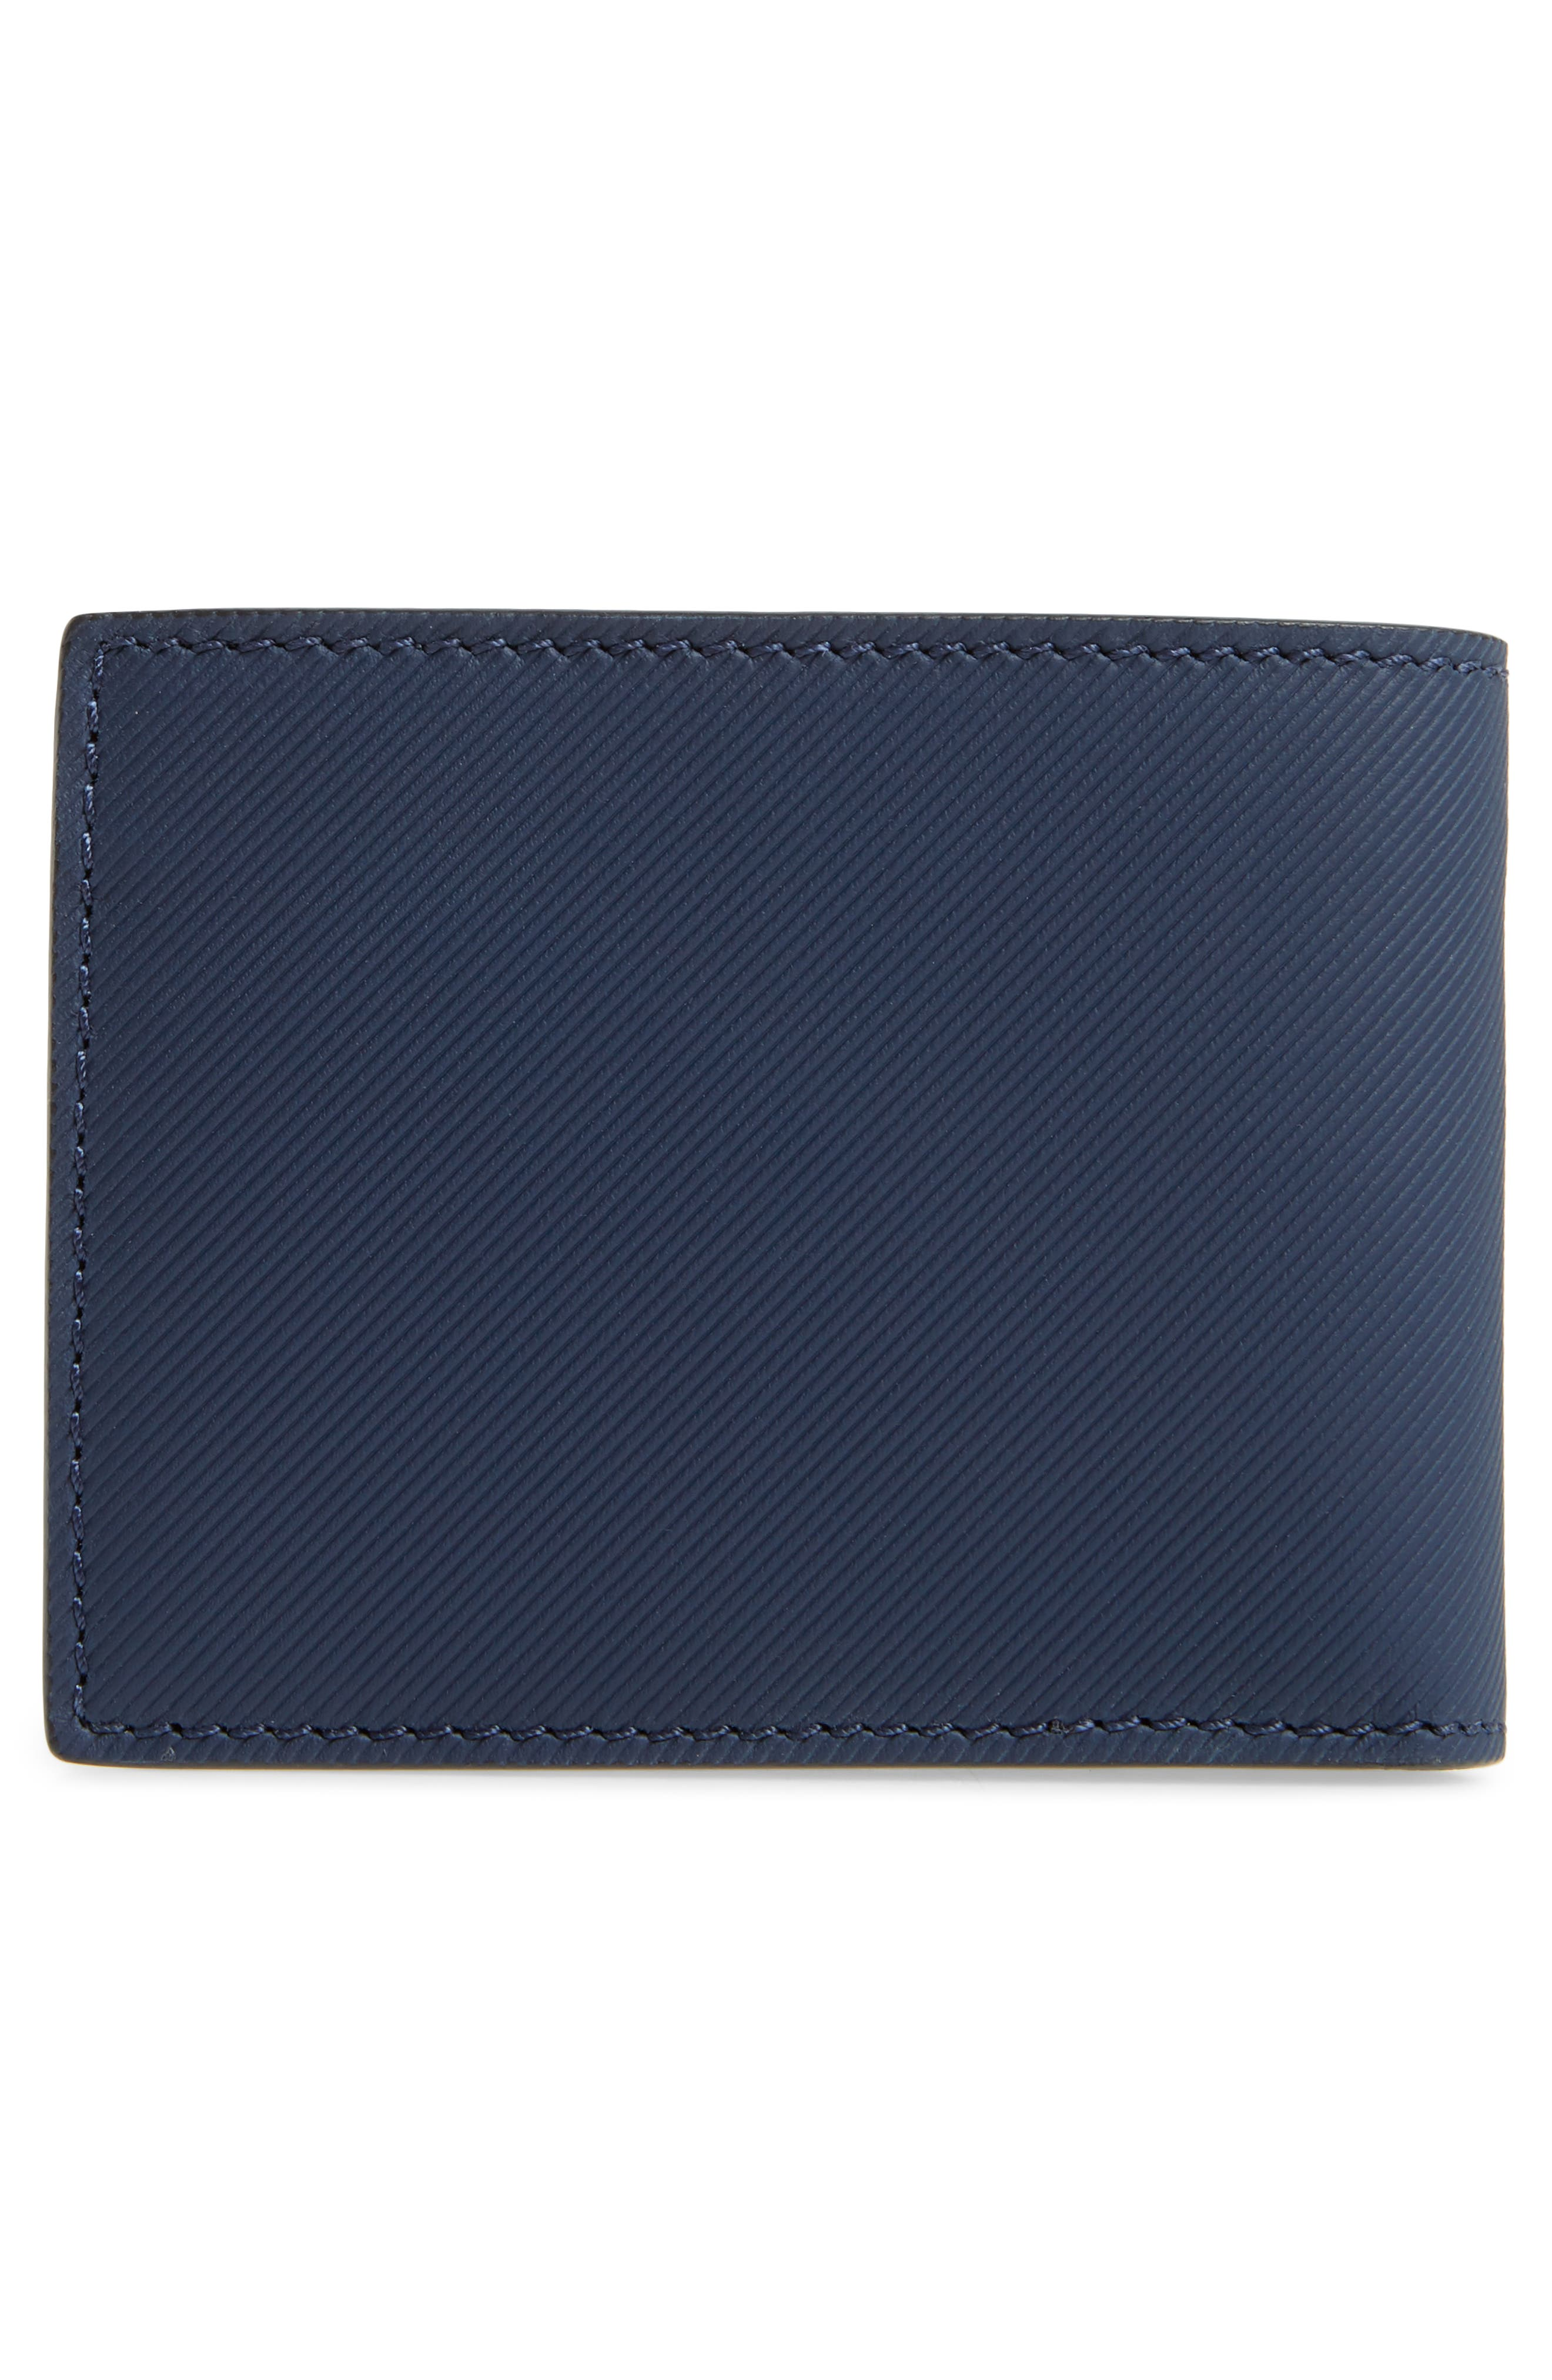 Alternate Image 3  - Burberry Trench Leather Wallet